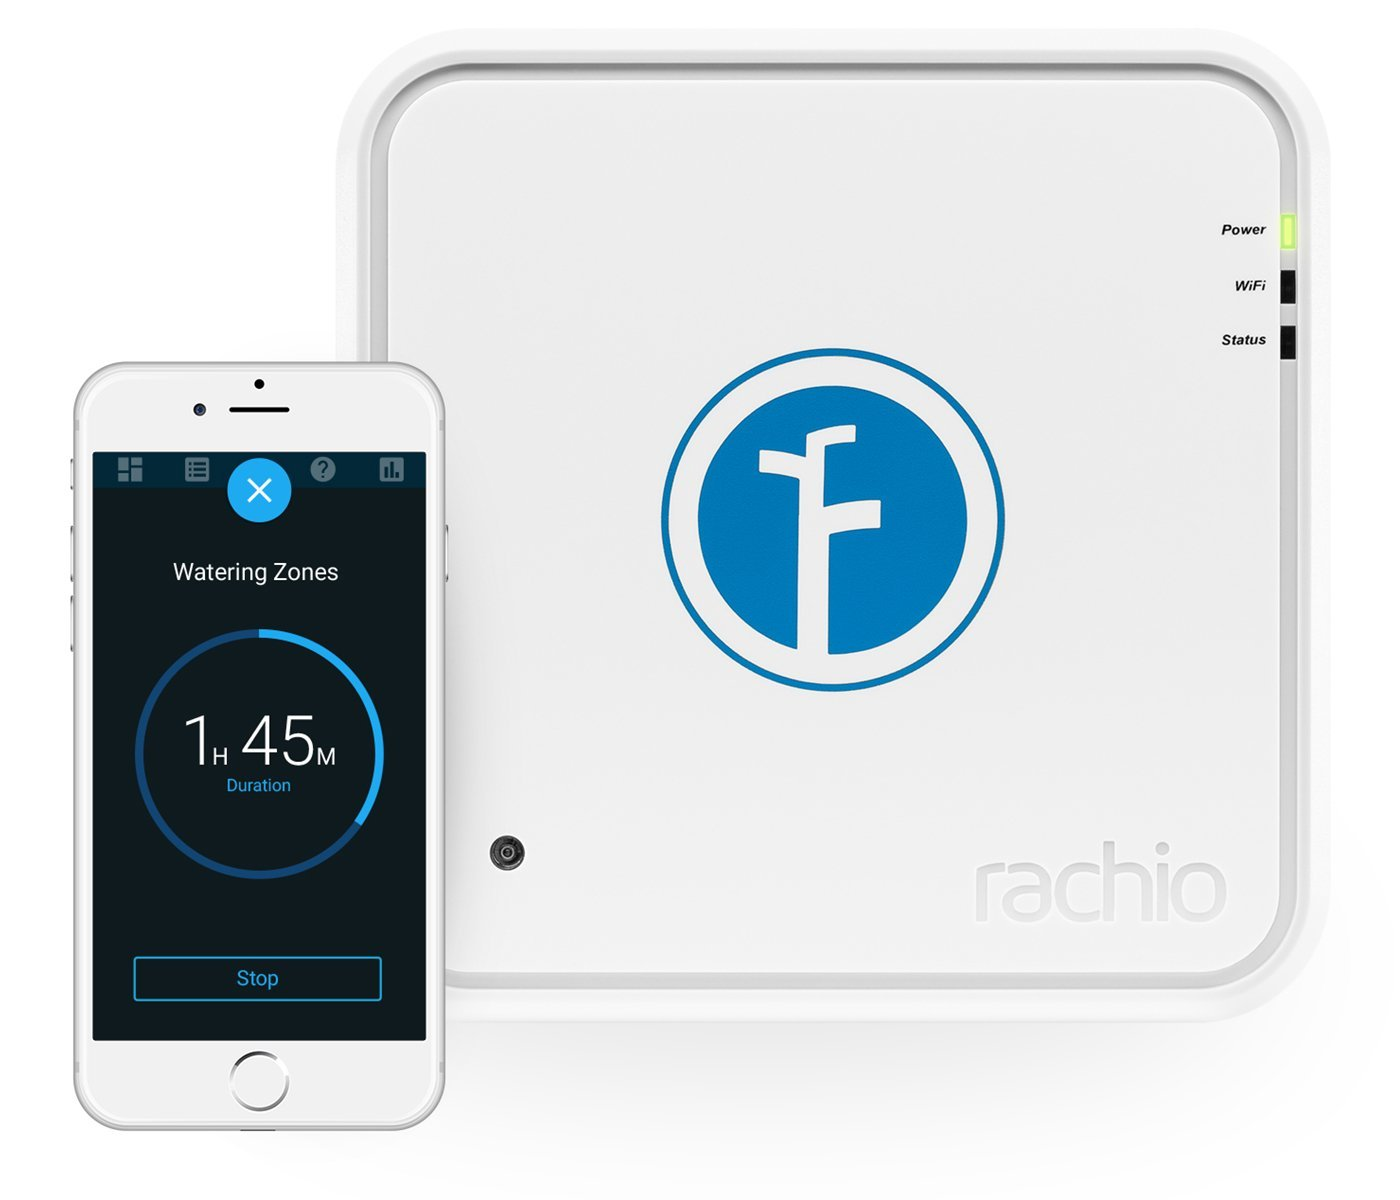 Rachio Smart Sprinkler Controller 16 Zone 1st Generation Works with Alexa